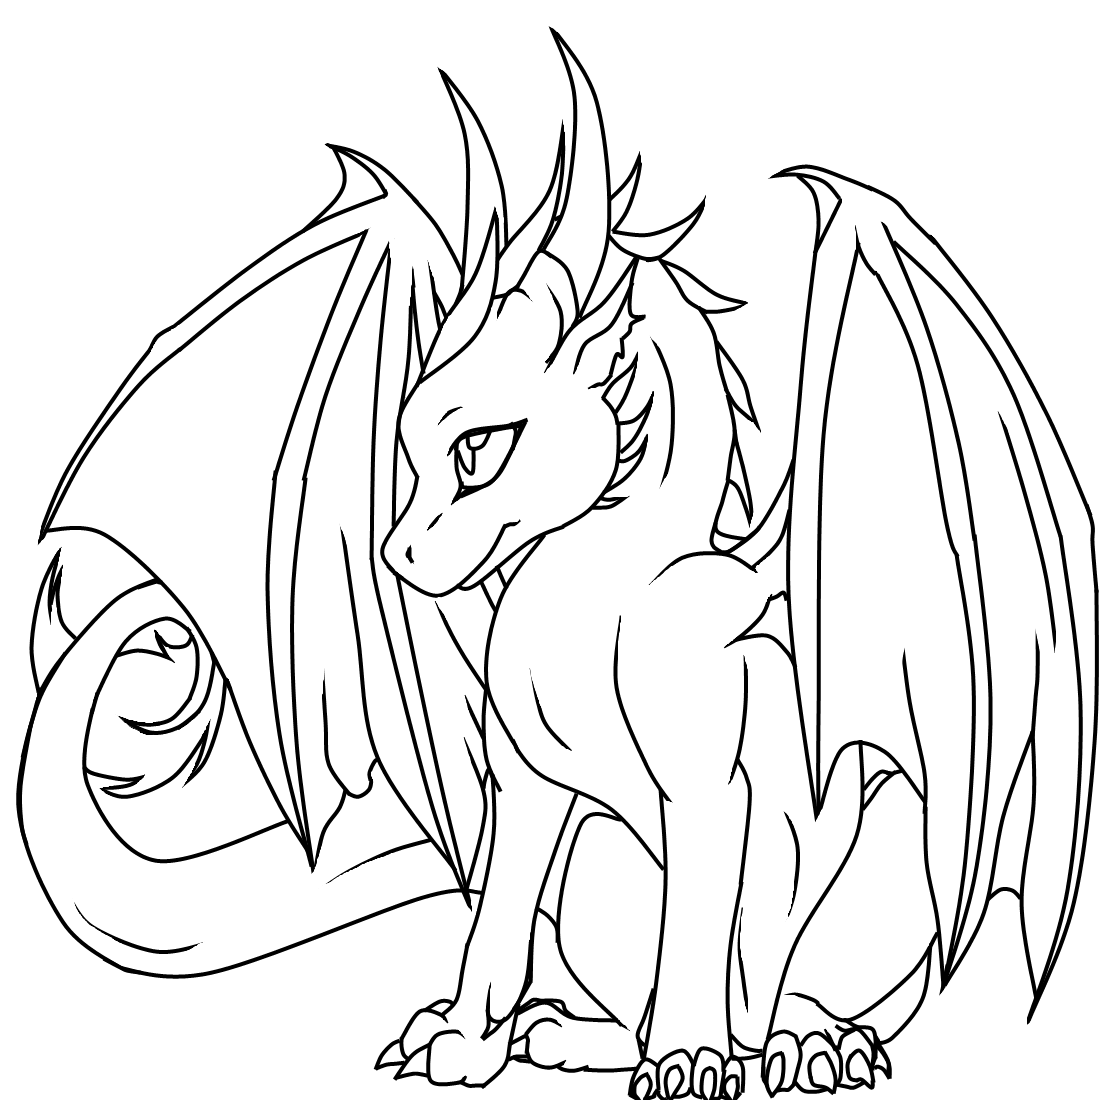 Dragon 148380 Characters Printable Coloring Pages